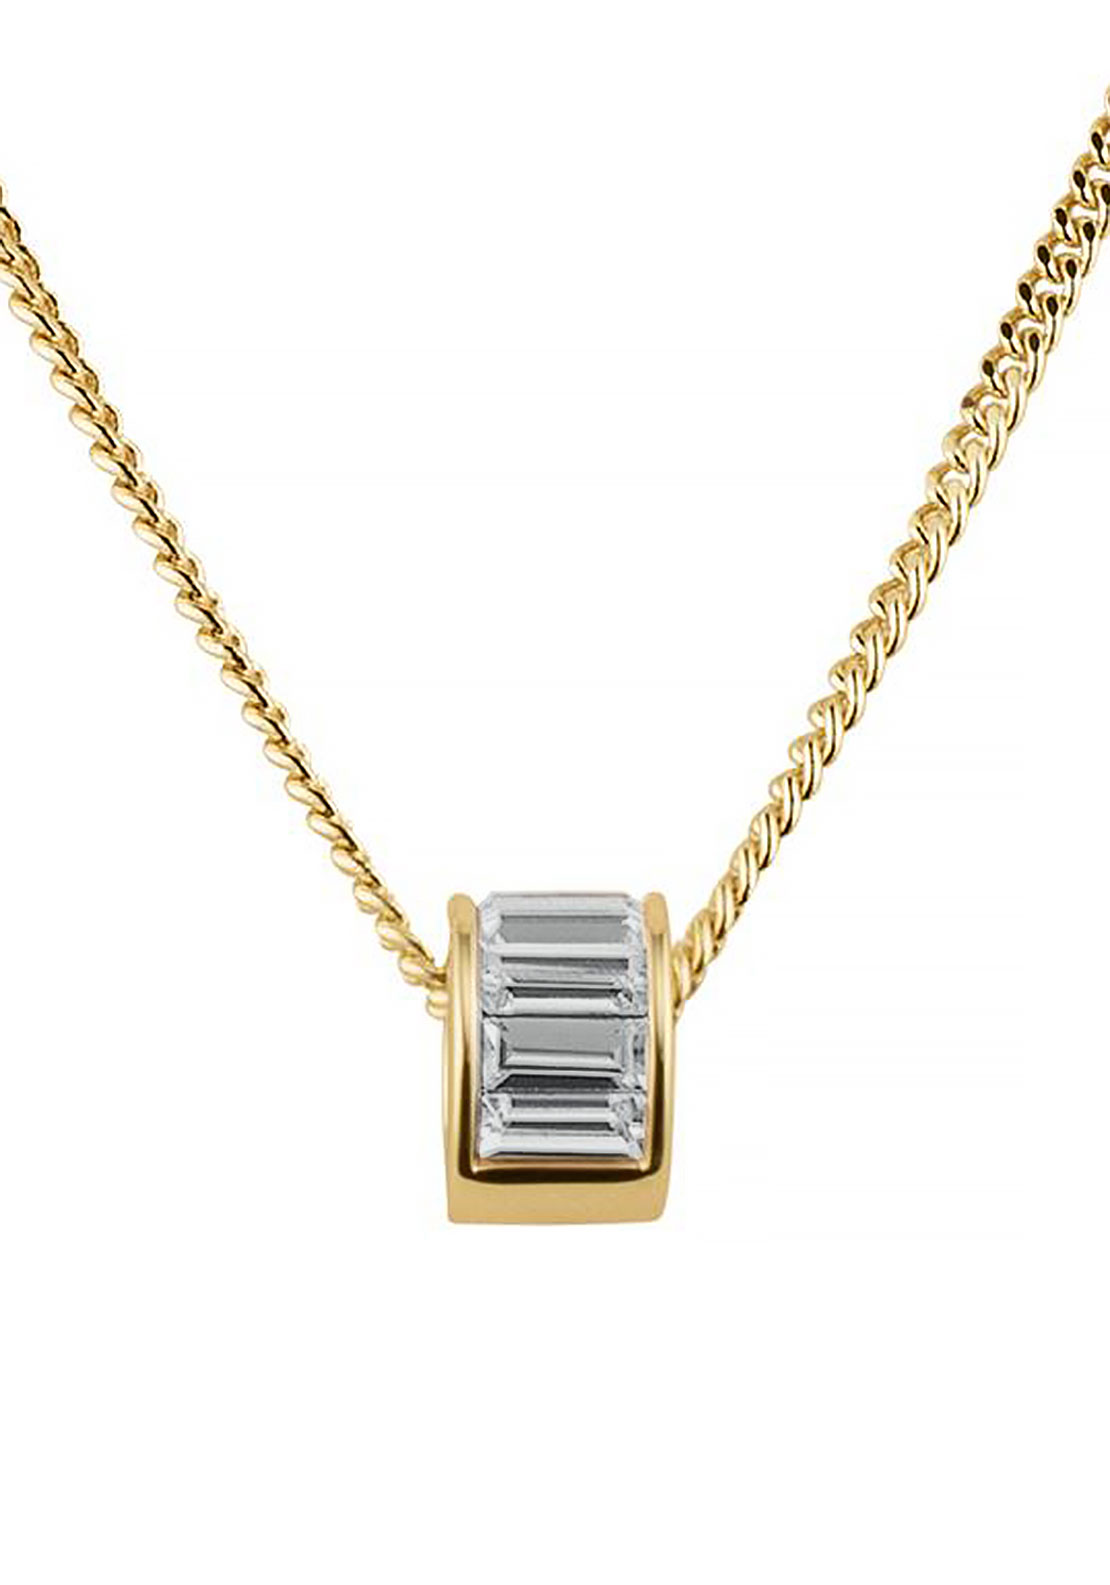 Dyrberg Kern Pilota Necklace, Gold